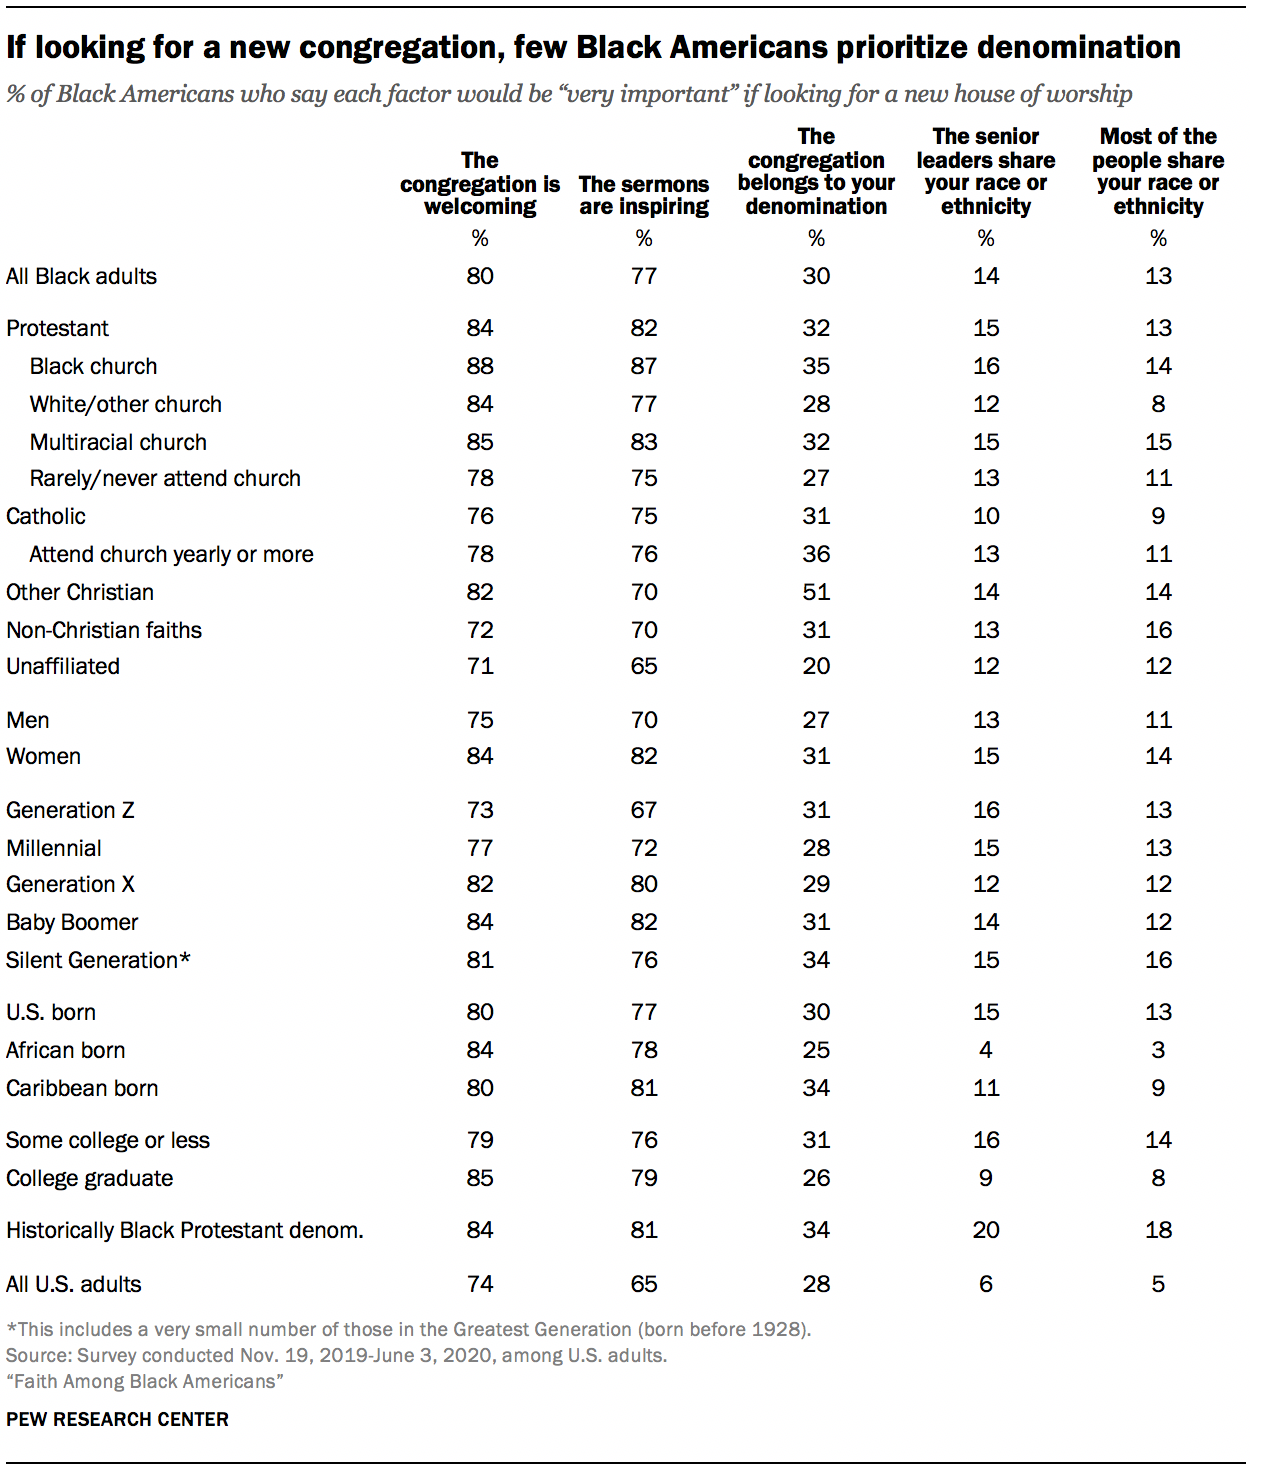 If looking for a new congregation, few Black Americans prioritize denomination